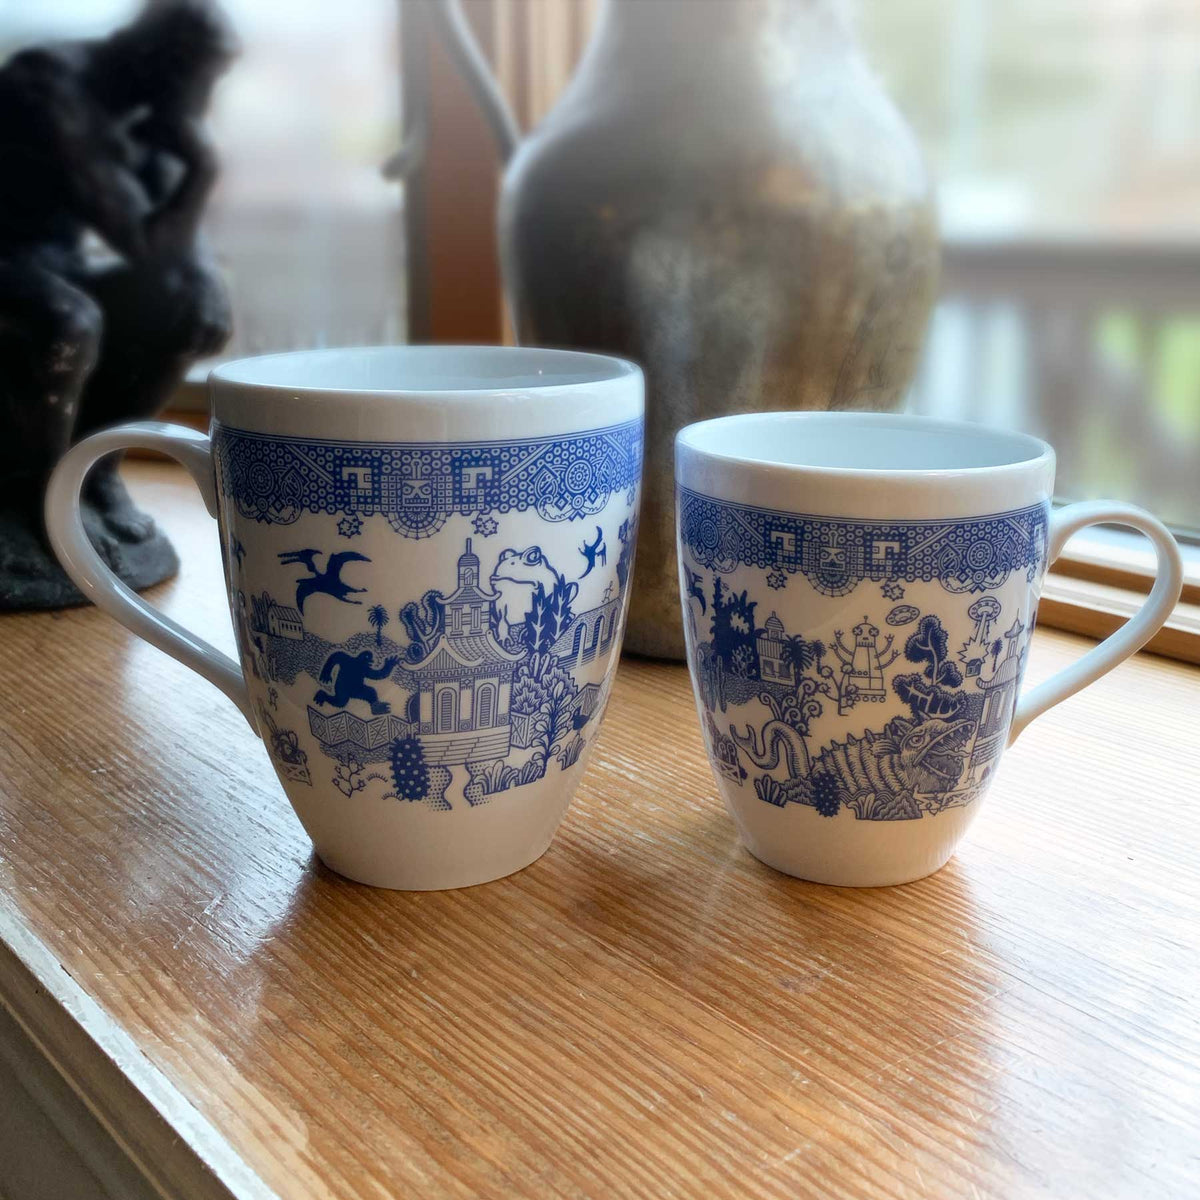 Calamityware Mugs Things Could Be Worse